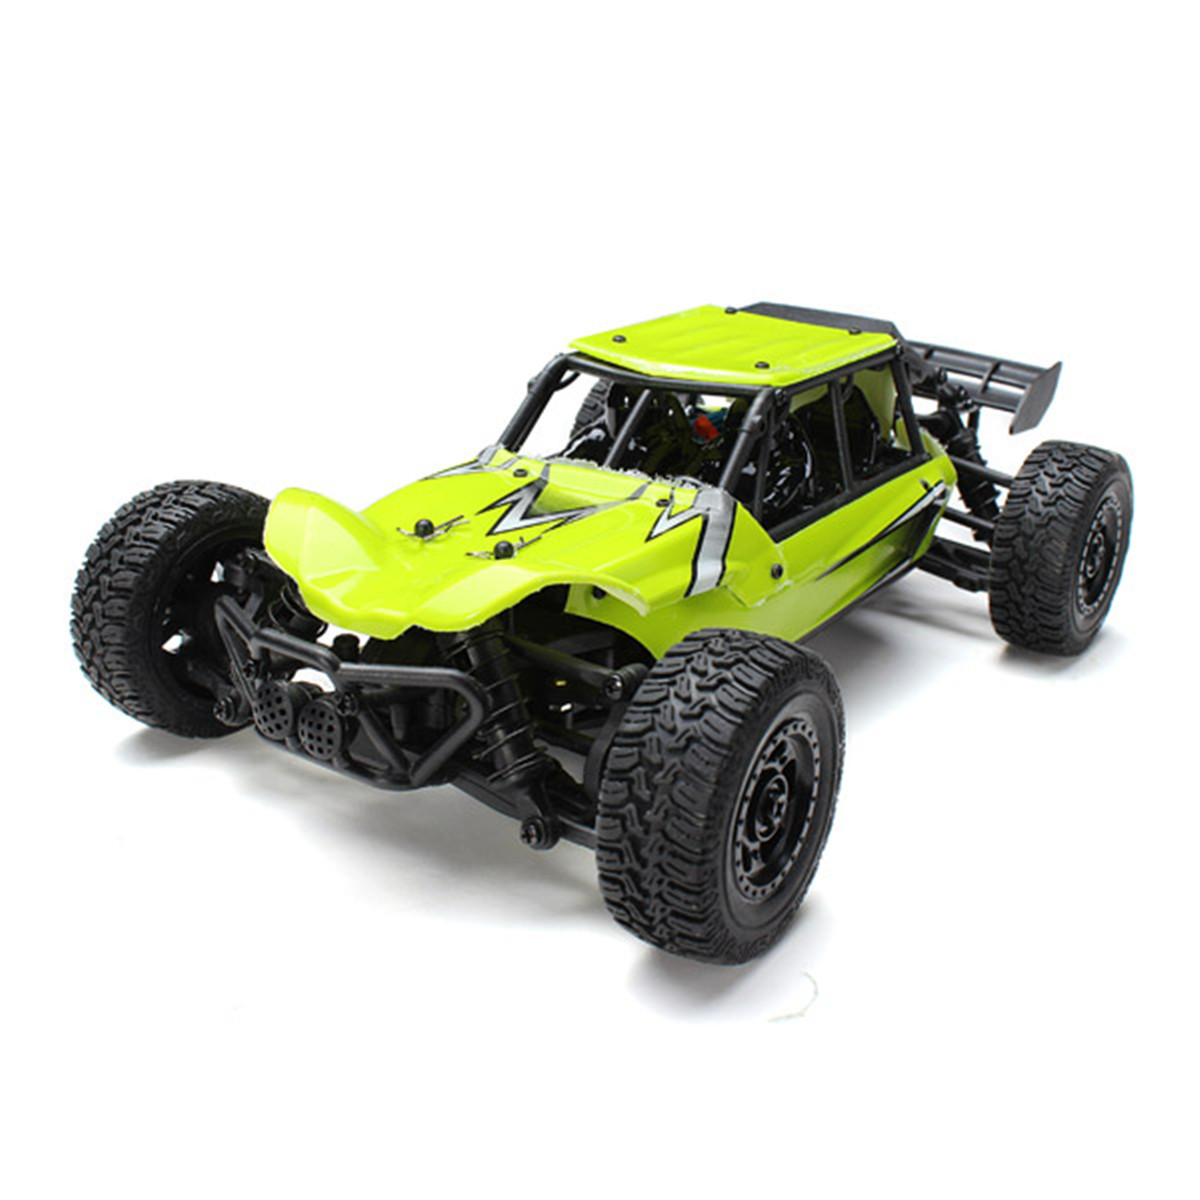 HBX 18856 1/18 RC Car 4WD Ratchet Off-road With Transmitter Sandrail Buggy Ready To GoHBX 18856 1/18 RC Car 4WD Ratchet Off-road With Transmitter Sandrail Buggy Ready To Go